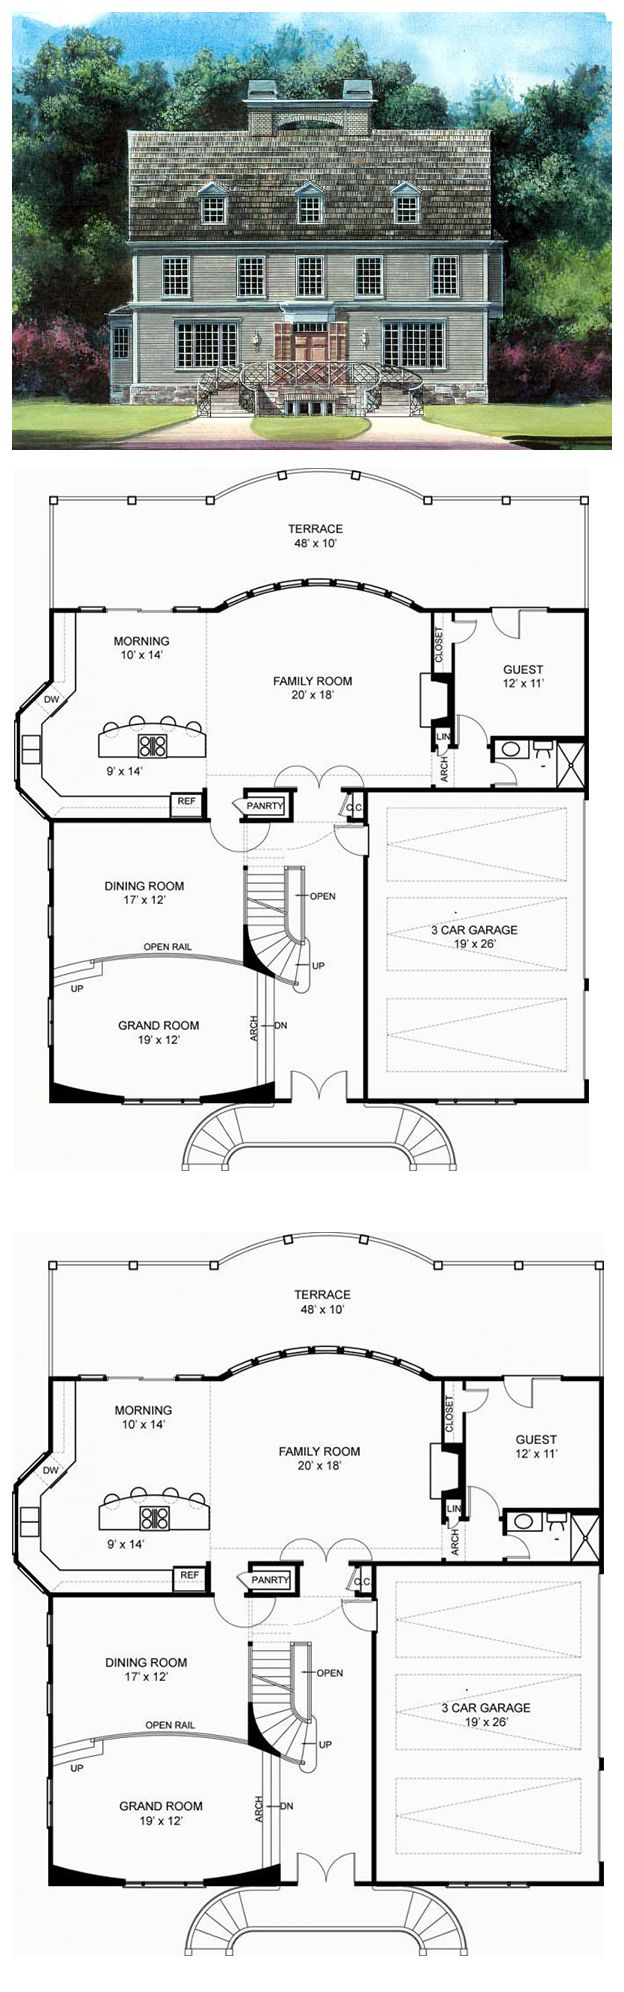 1000 images about greek revival house plans on pinterest for Rear access home designs